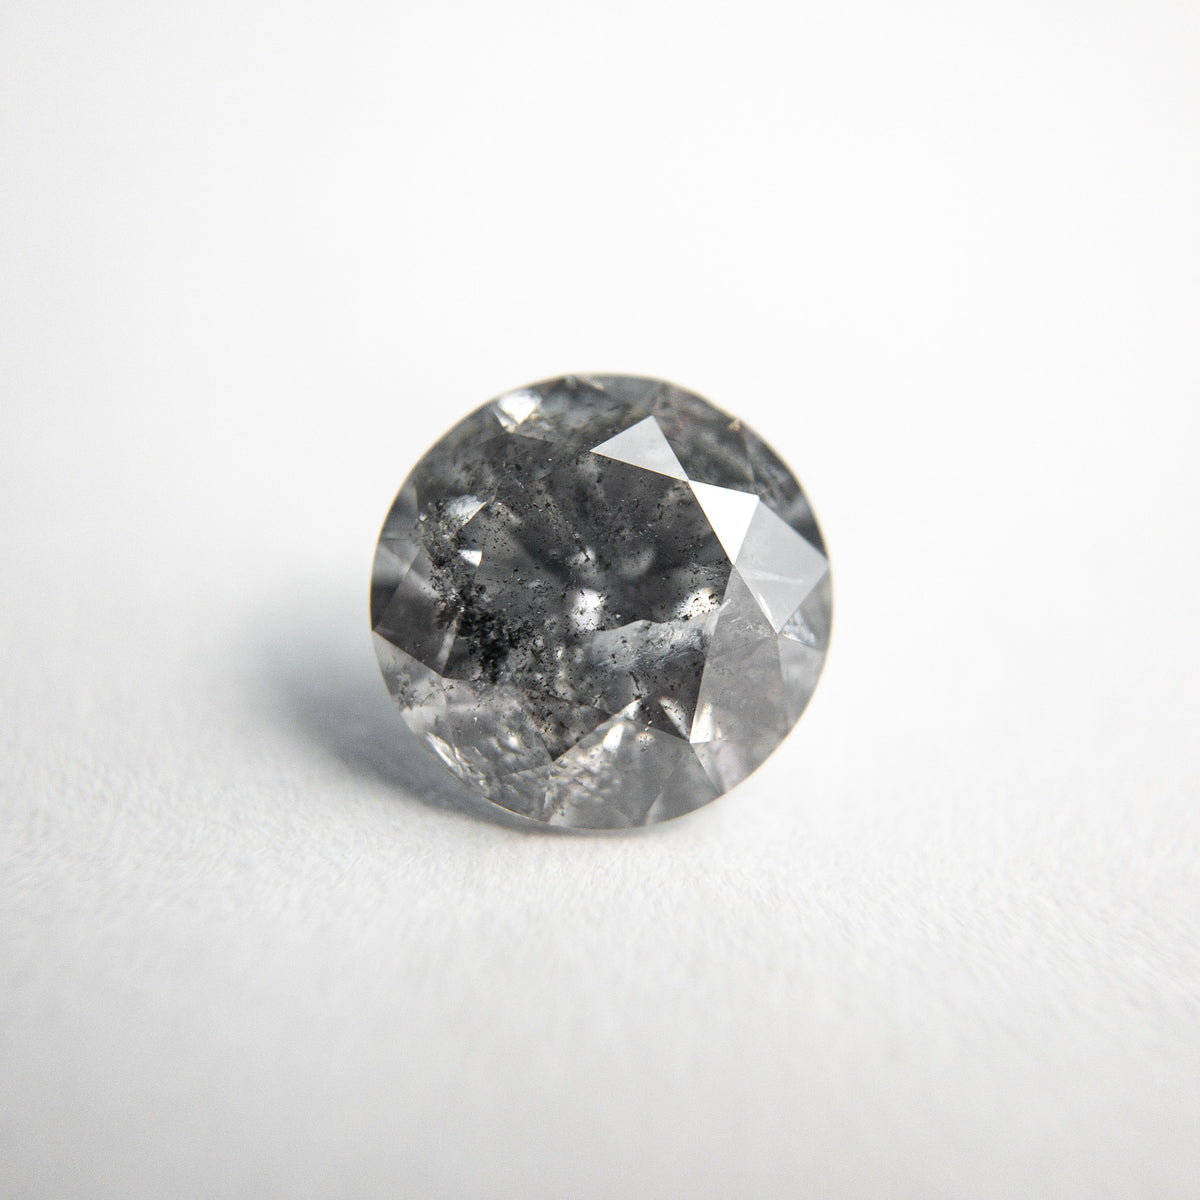 1.54ct 7.19x7.14x4.61mm Round Brilliant 18448-01